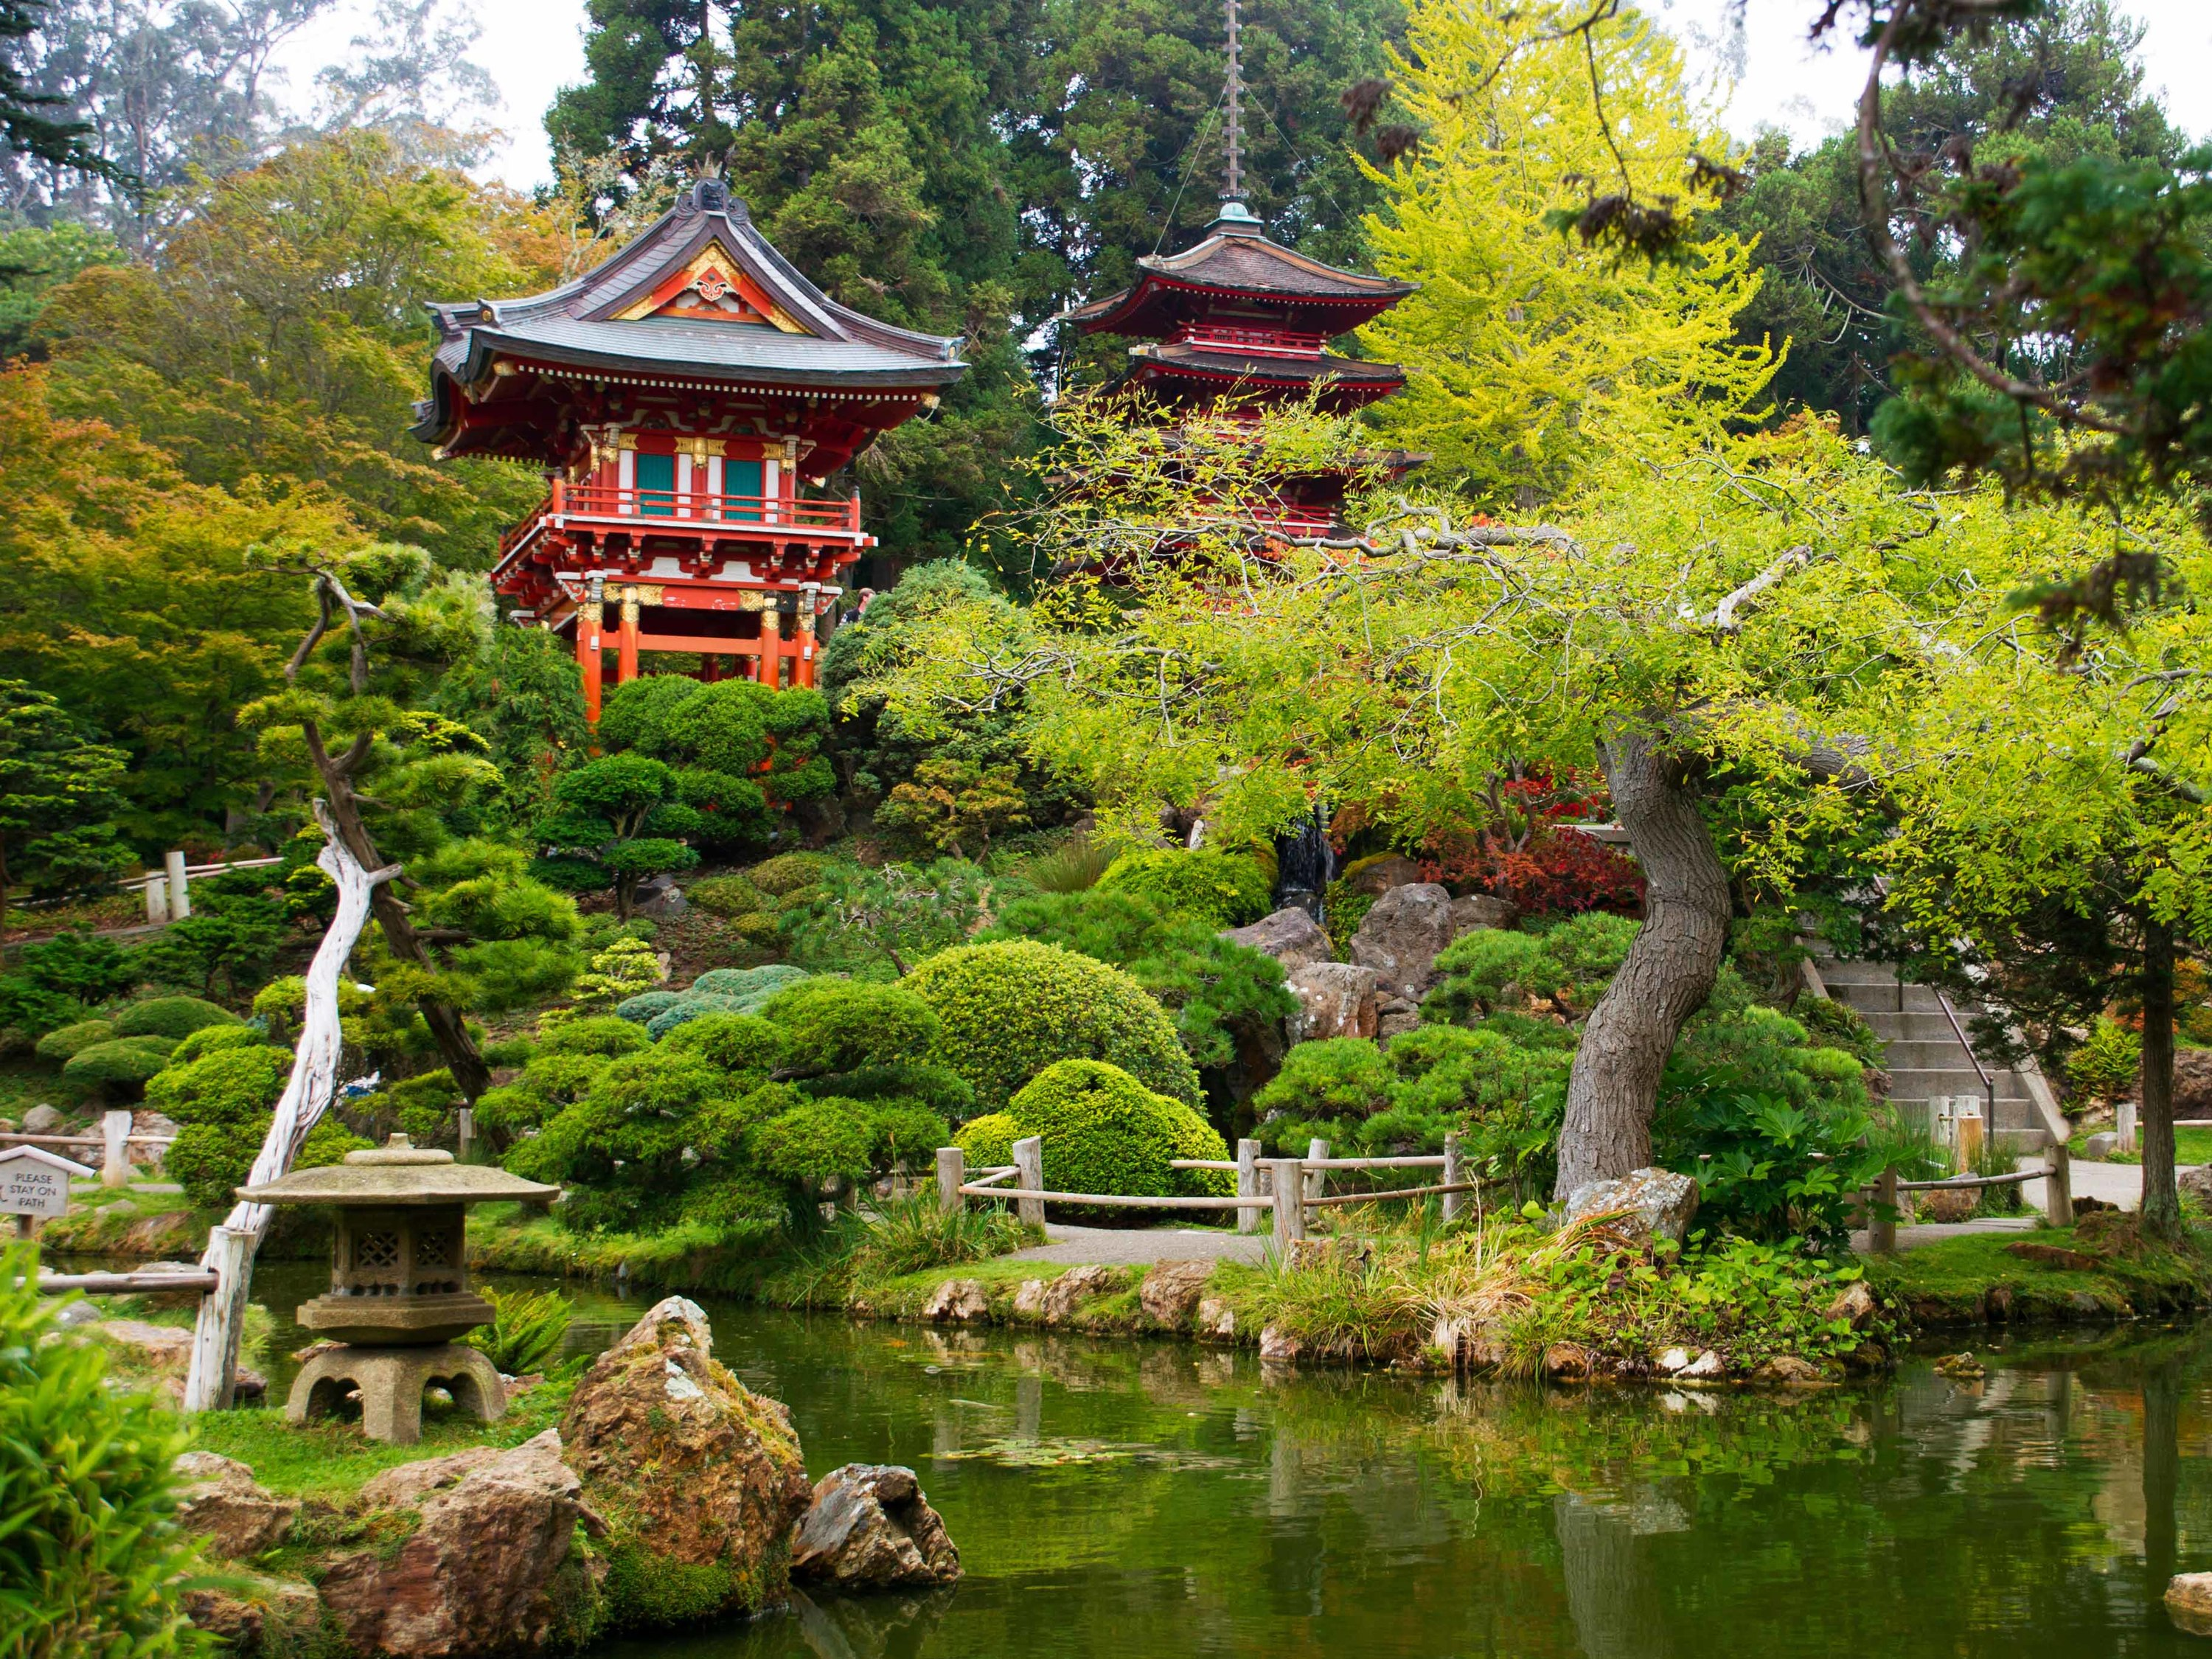 Japanese Tea Gardens, San Francisco, California